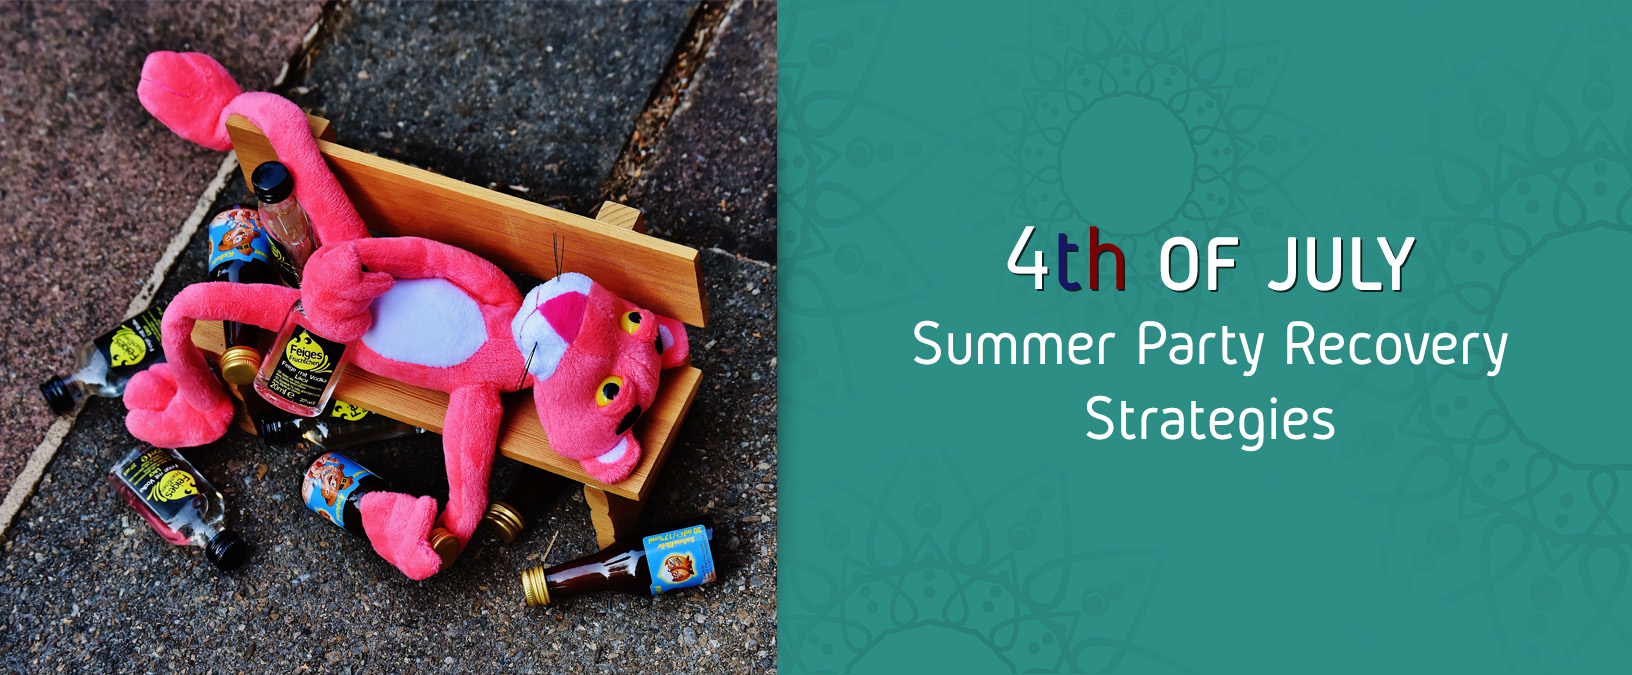 4th of July Summer Party Recovery Strategies